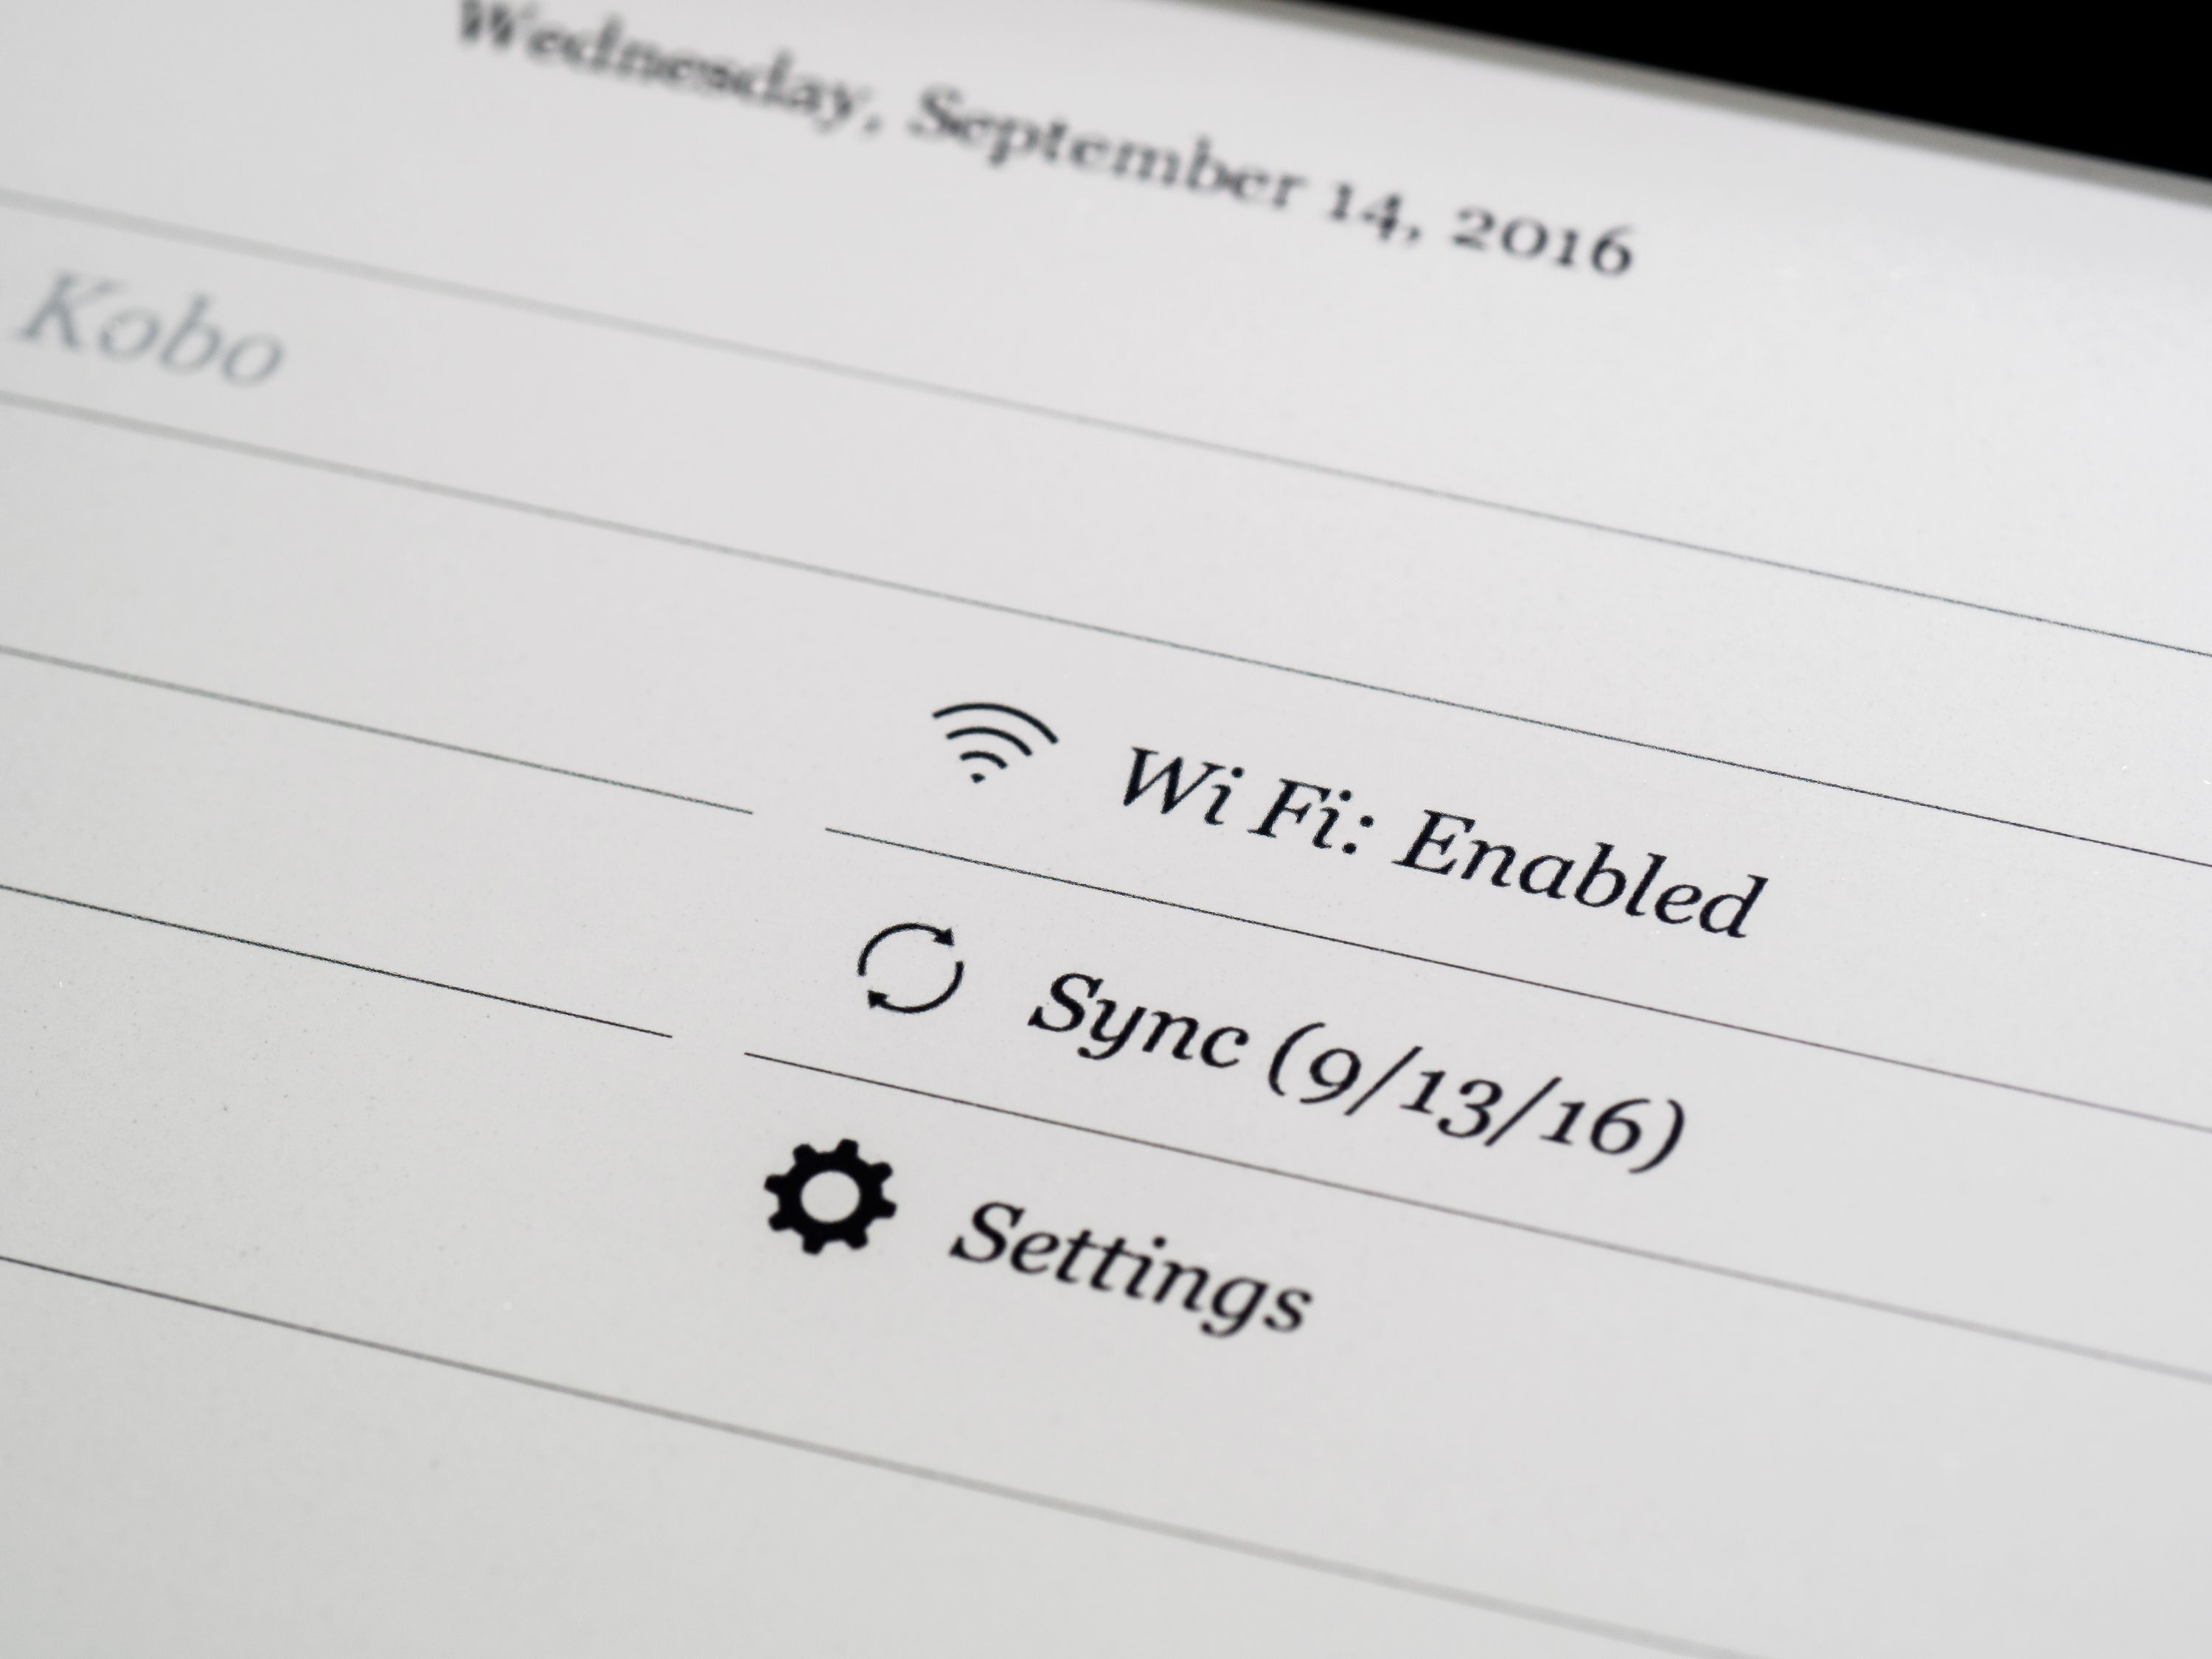 Sync, page turns, and menu navigation are a bit slower on the Aura One than the Kindle Oasis, but the difference is impossible to notice unless you're comparing them directly.